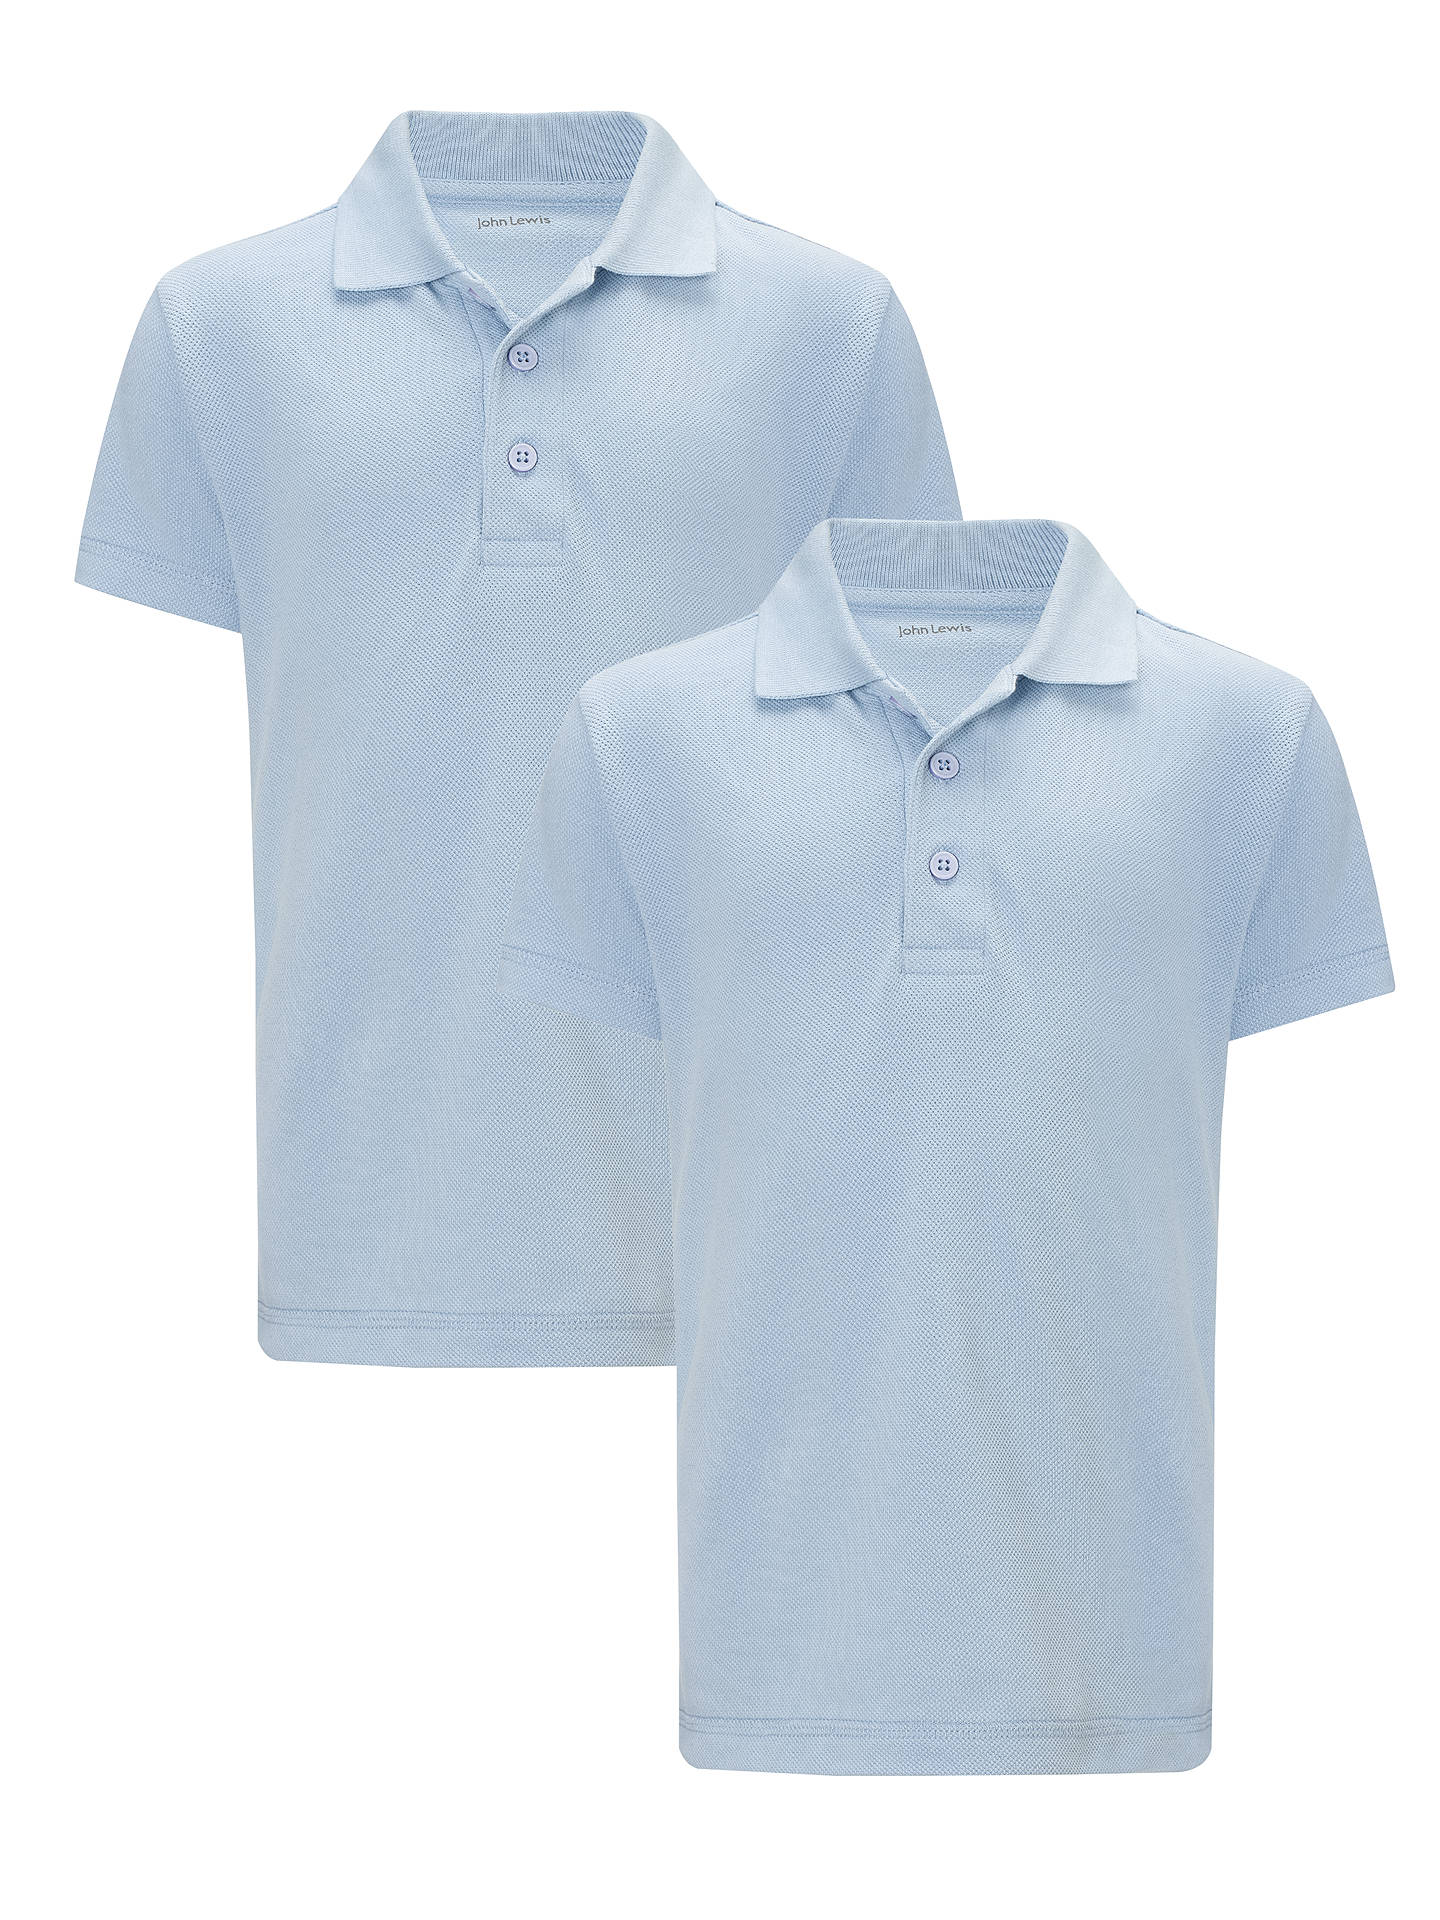 John Lewis School Polo Shirts Pack Of 2 Blue At John Lewis Partners